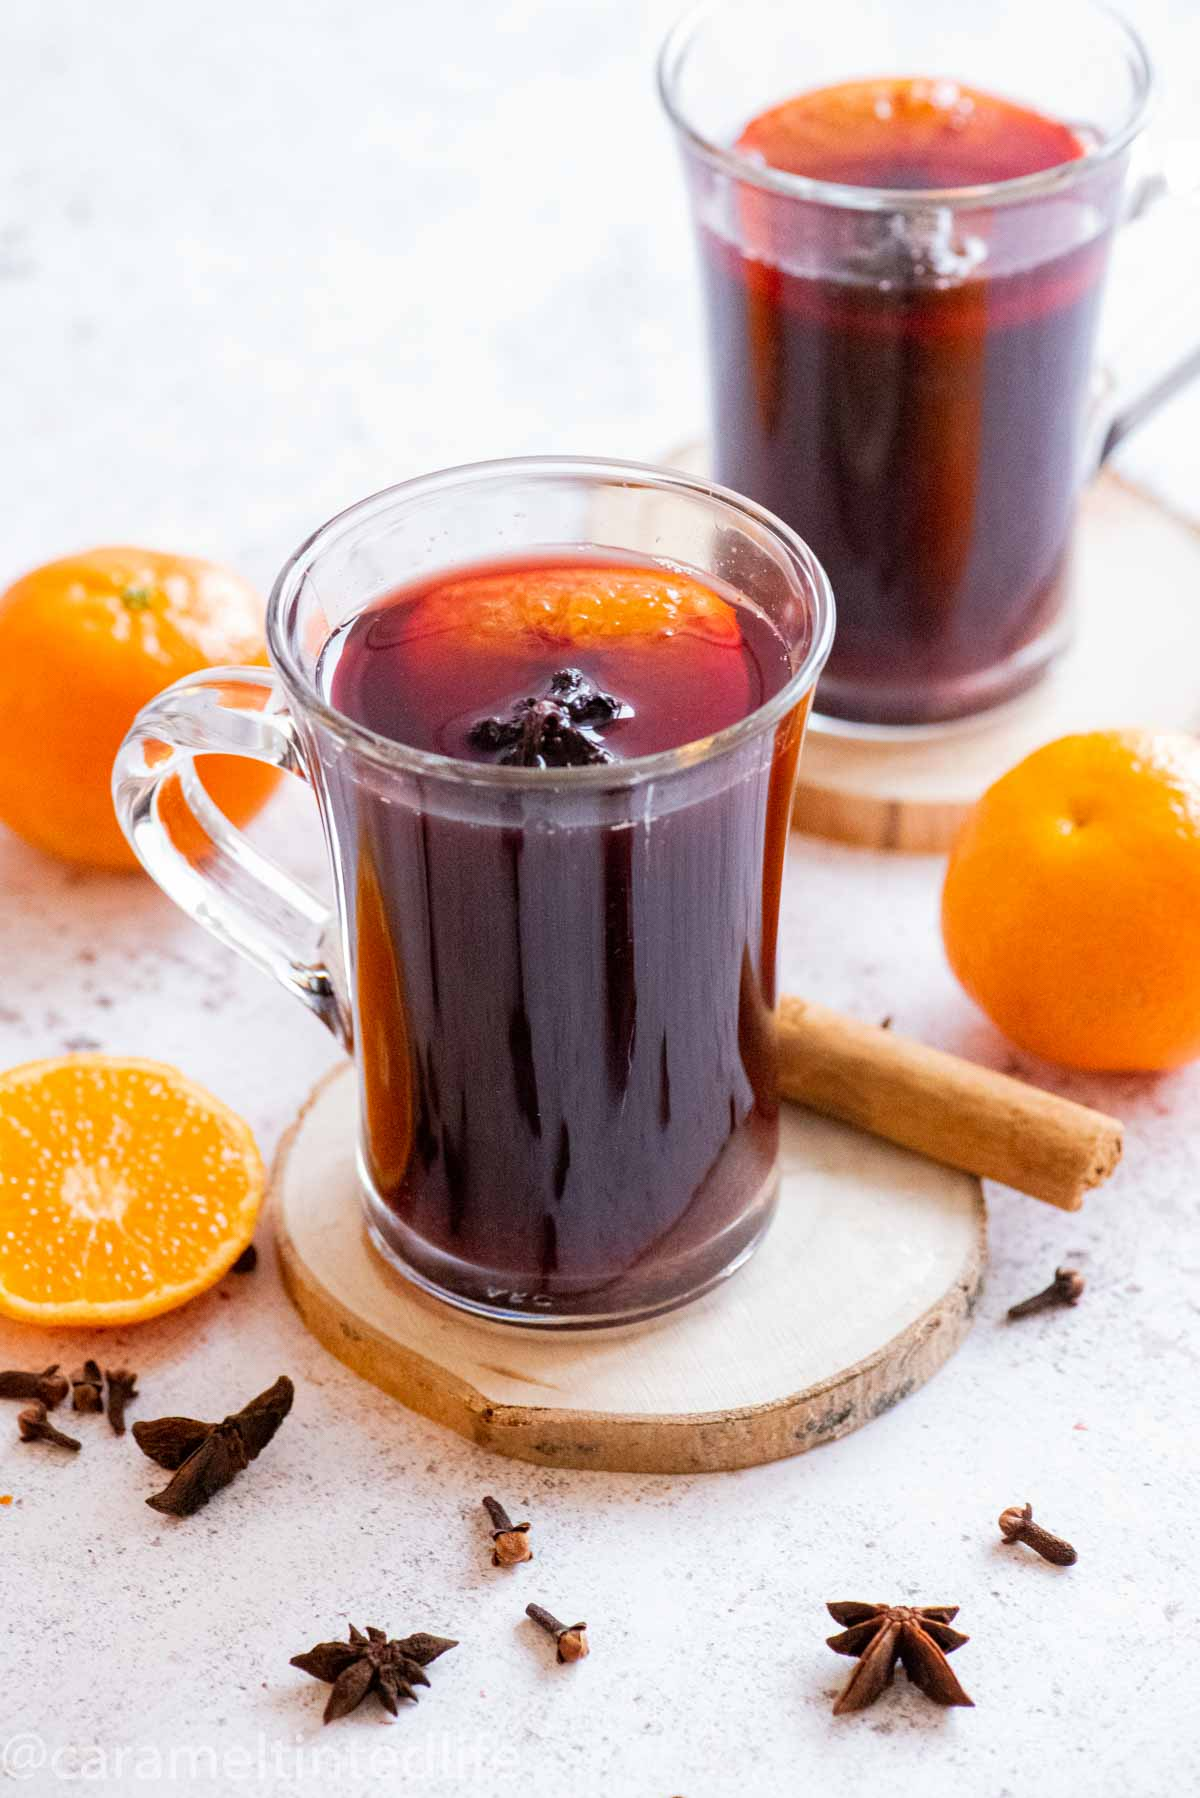 a glass of mulled wine in the foreground, one in the background